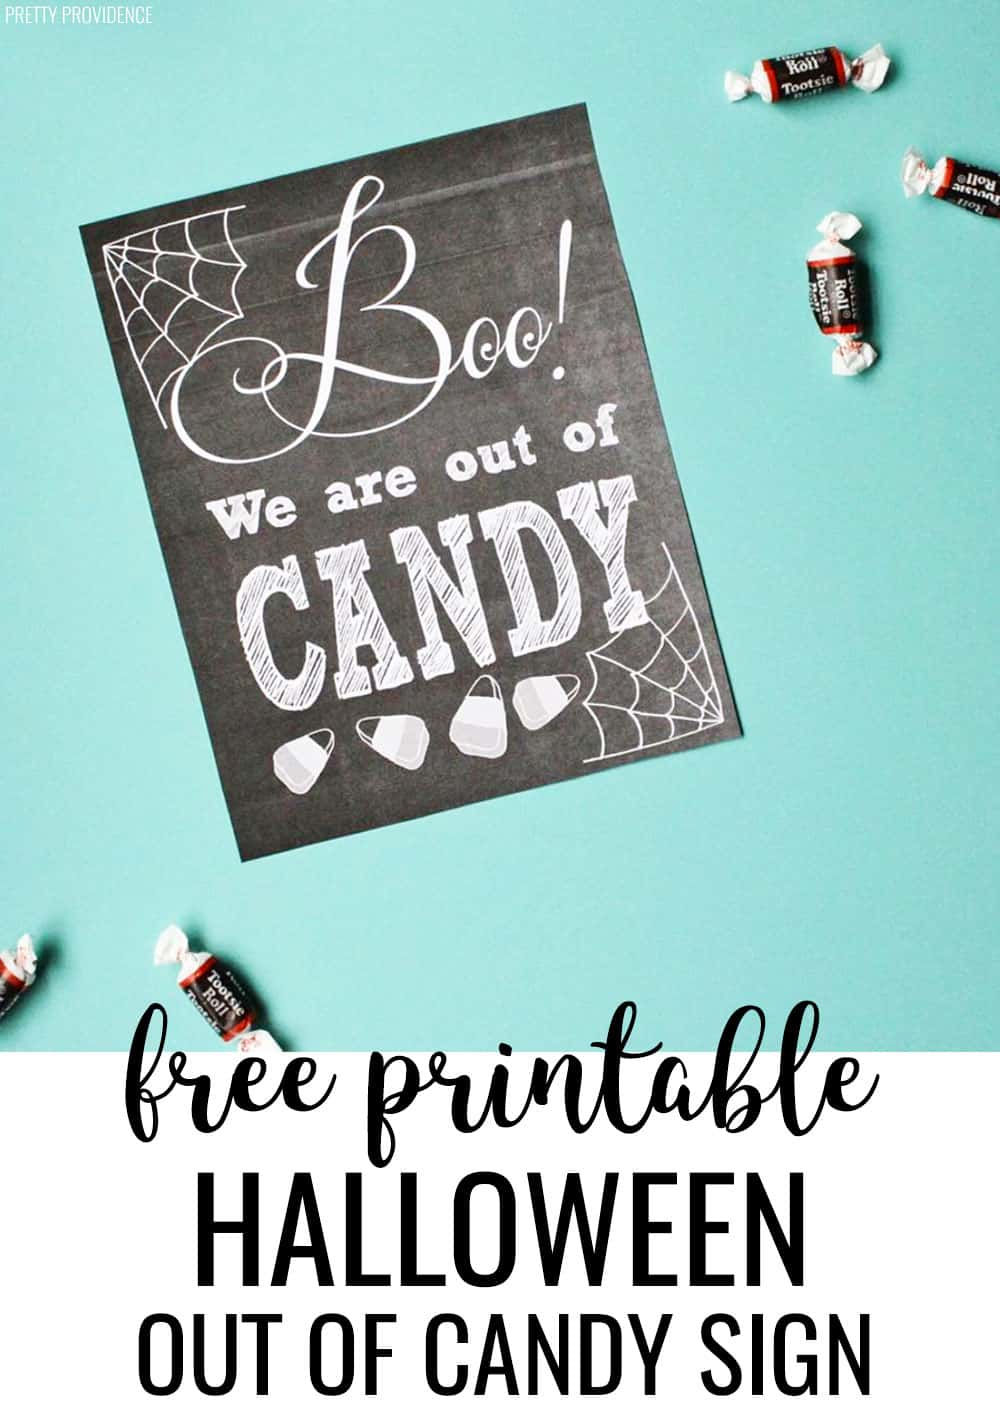 Boo! We are Out of Candy free printable sign for Halloween